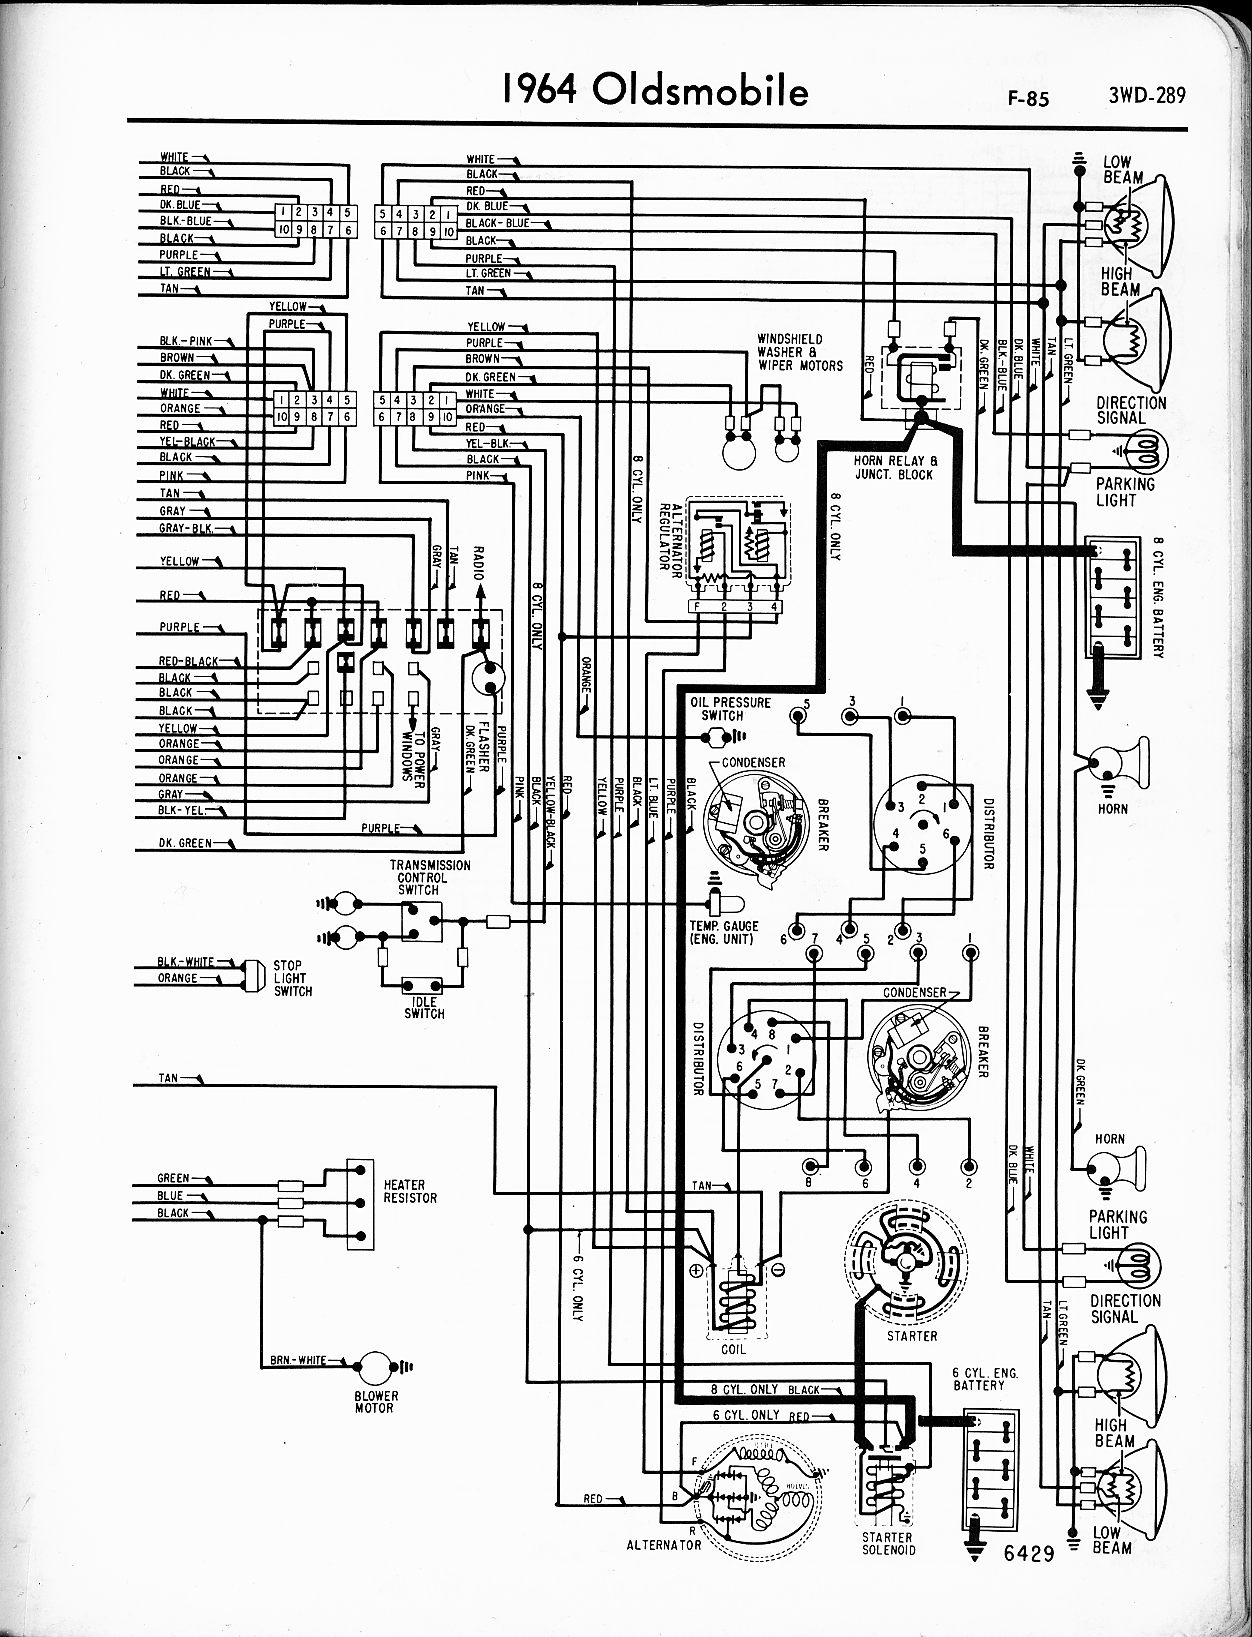 DIAGRAM] 1992 Olds 88 Wiring Diagram FULL Version HD Quality Wiring Diagram  - MJJGUIDES.PRIMACASA-IMMOBILIARE.ITElectrical Wiring Diagram